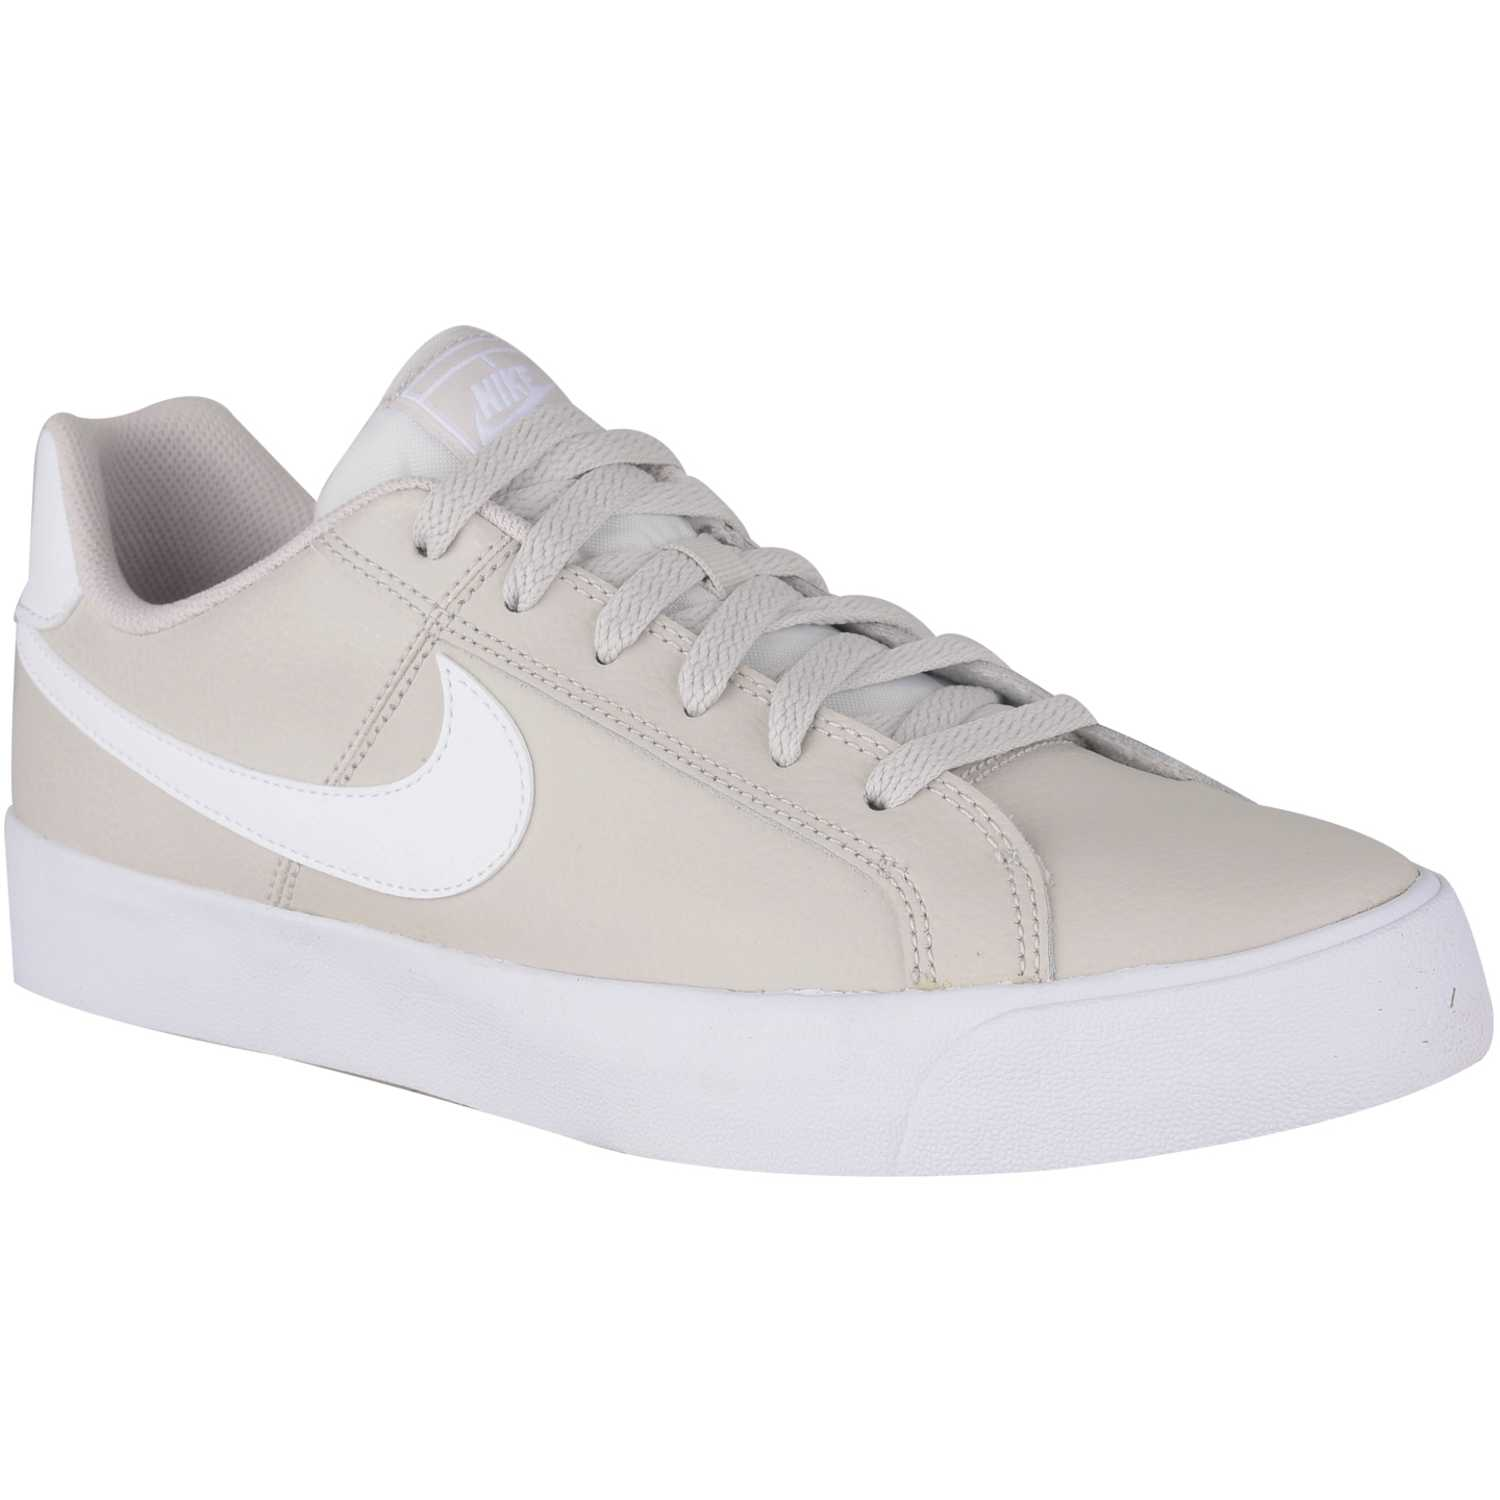 Zapatillas color blanco de casual nike Court Royale 833535 107